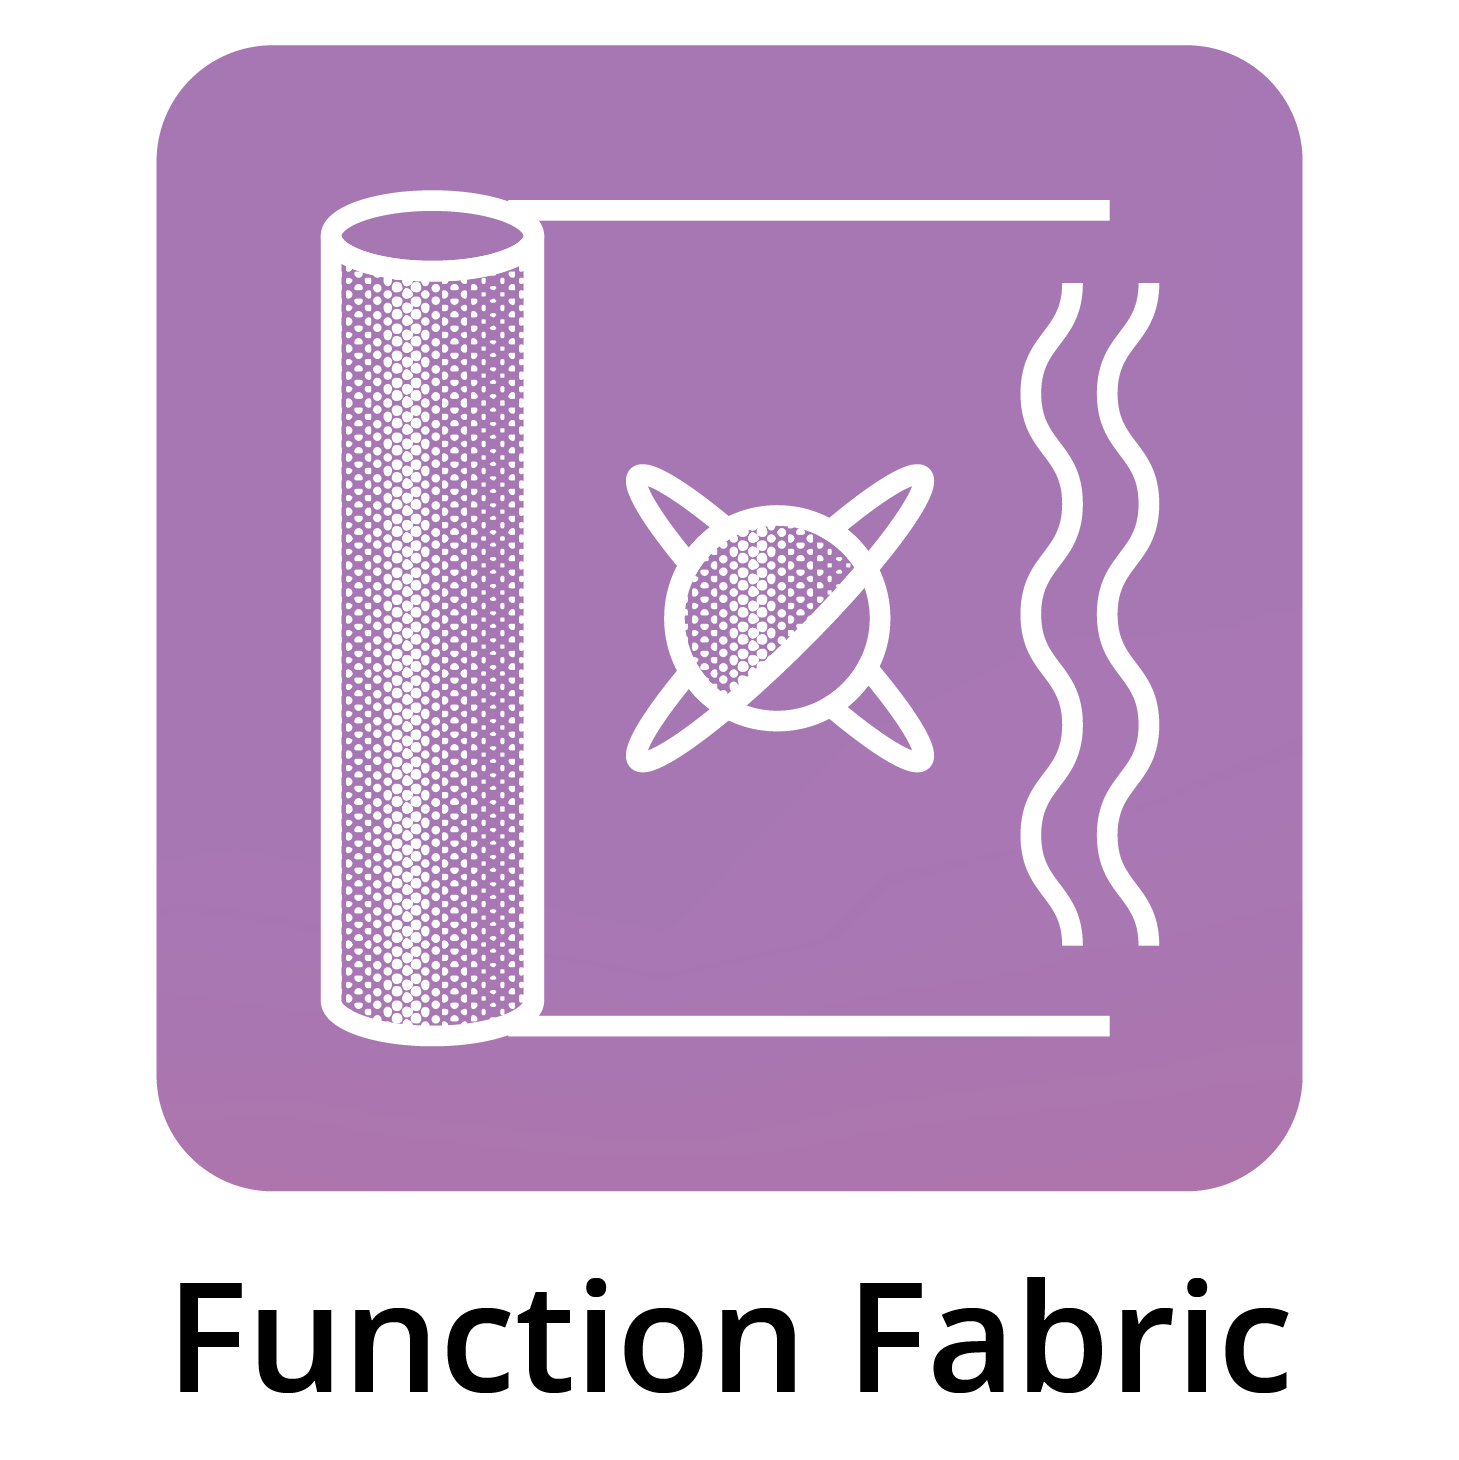 Function Fabric in Bed Icon